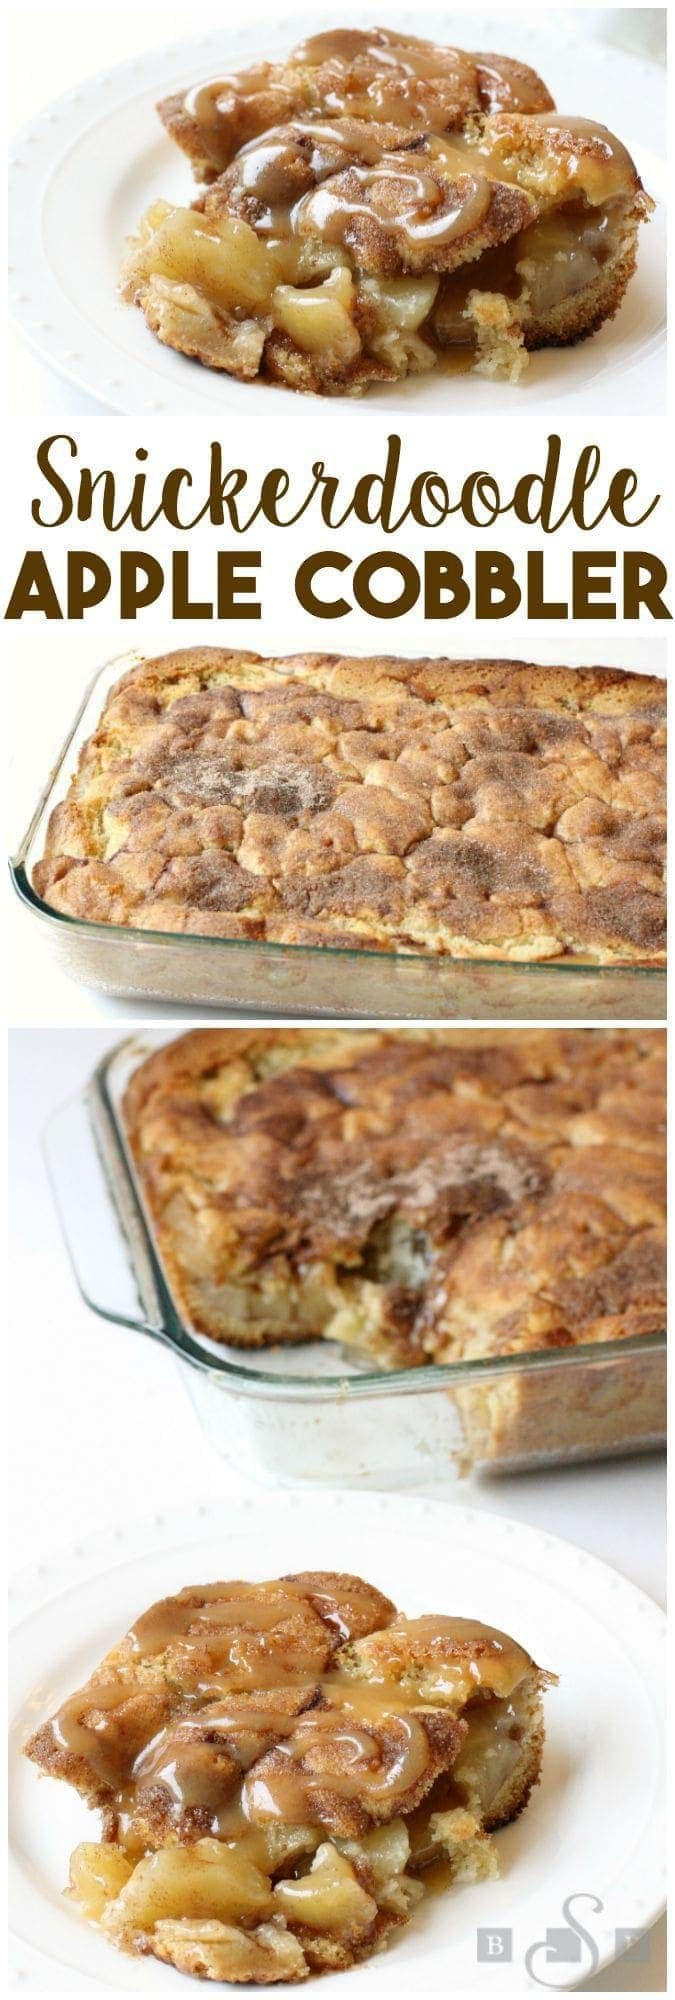 Snickerdoodle Apple Cobbler is a tasty twist on a delicious apple cobbler. With a cinnamon sugar cookie dough, caramel drizzle and canned cinnamon apple pie filling this dish is easy to make and incredible to eat!